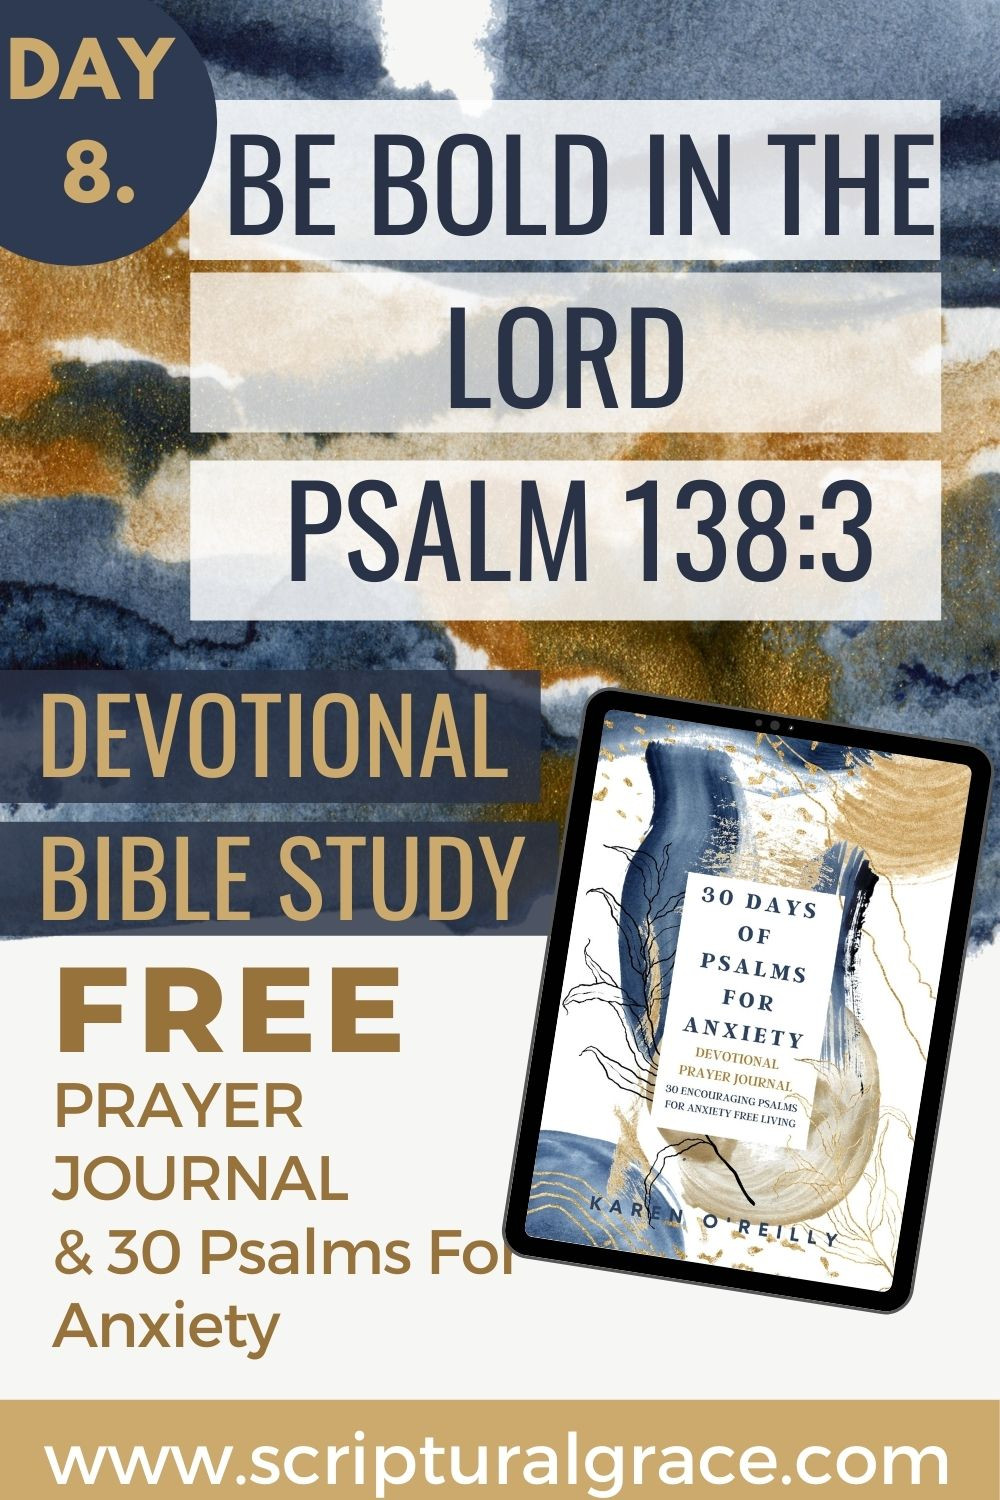 BE BOLD IN THE LORD PSALM 138 3 DEVOTIONAL